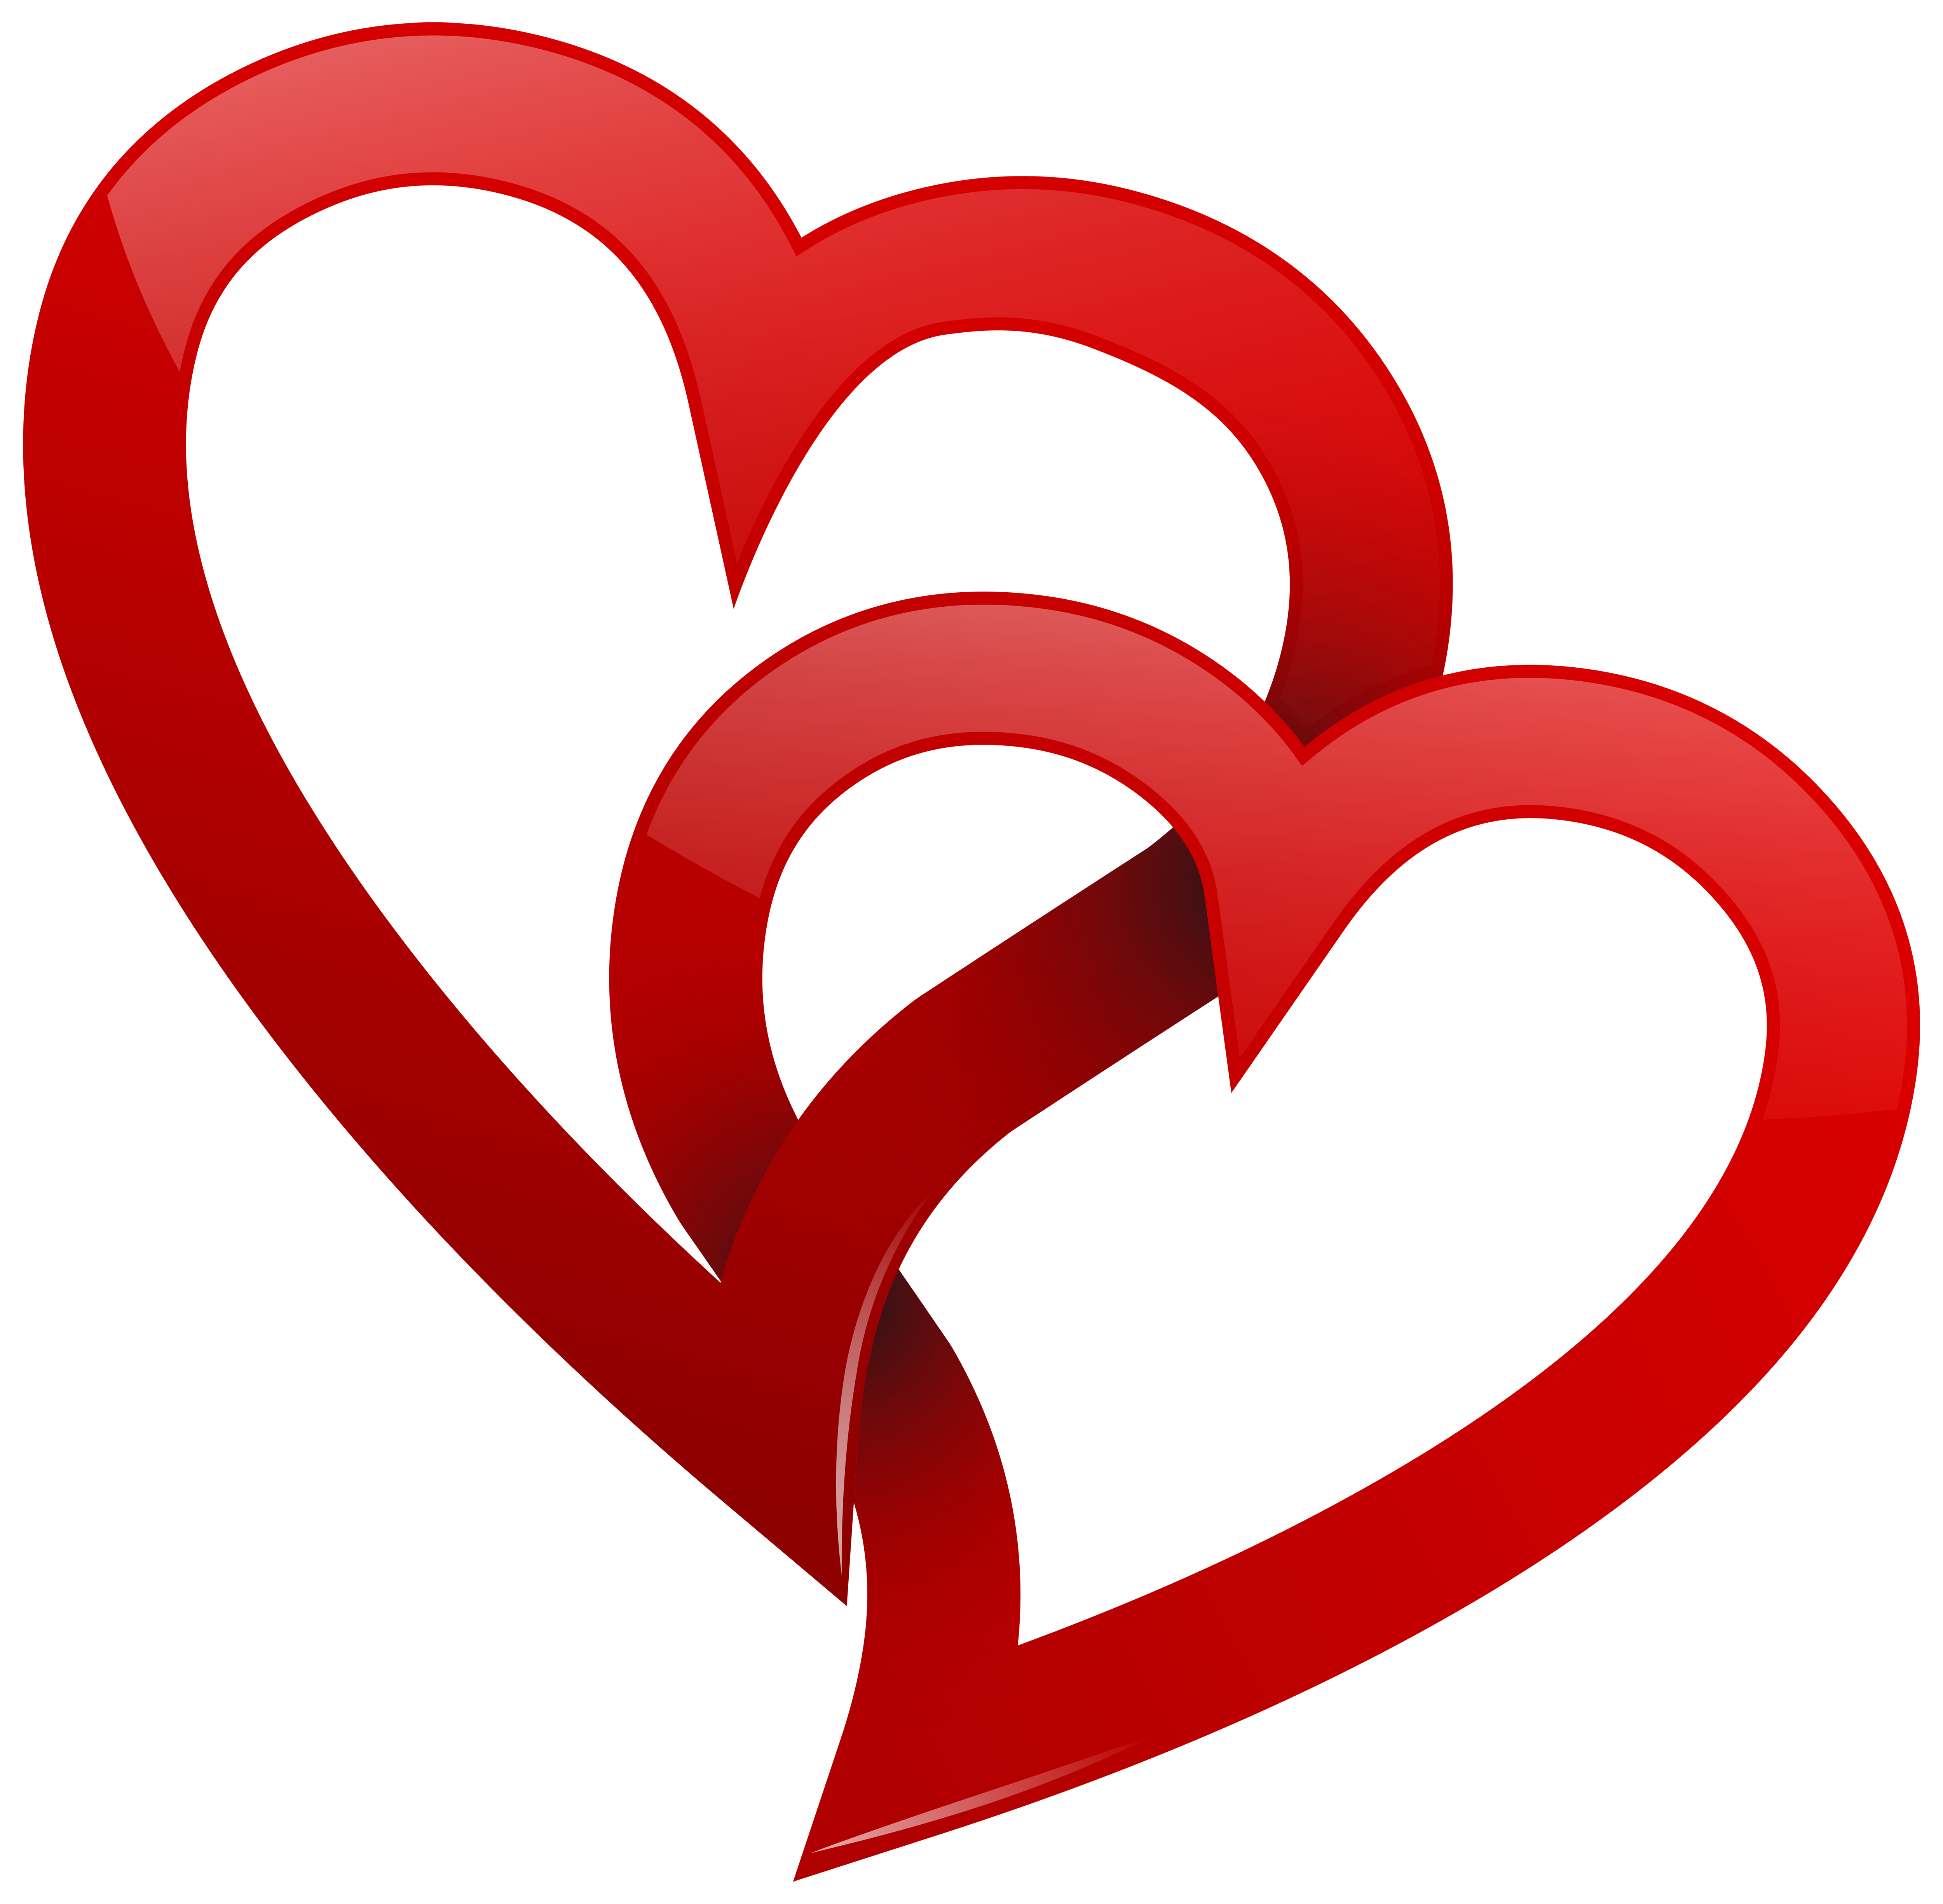 transparent stock Hearts clipart. Two red png best